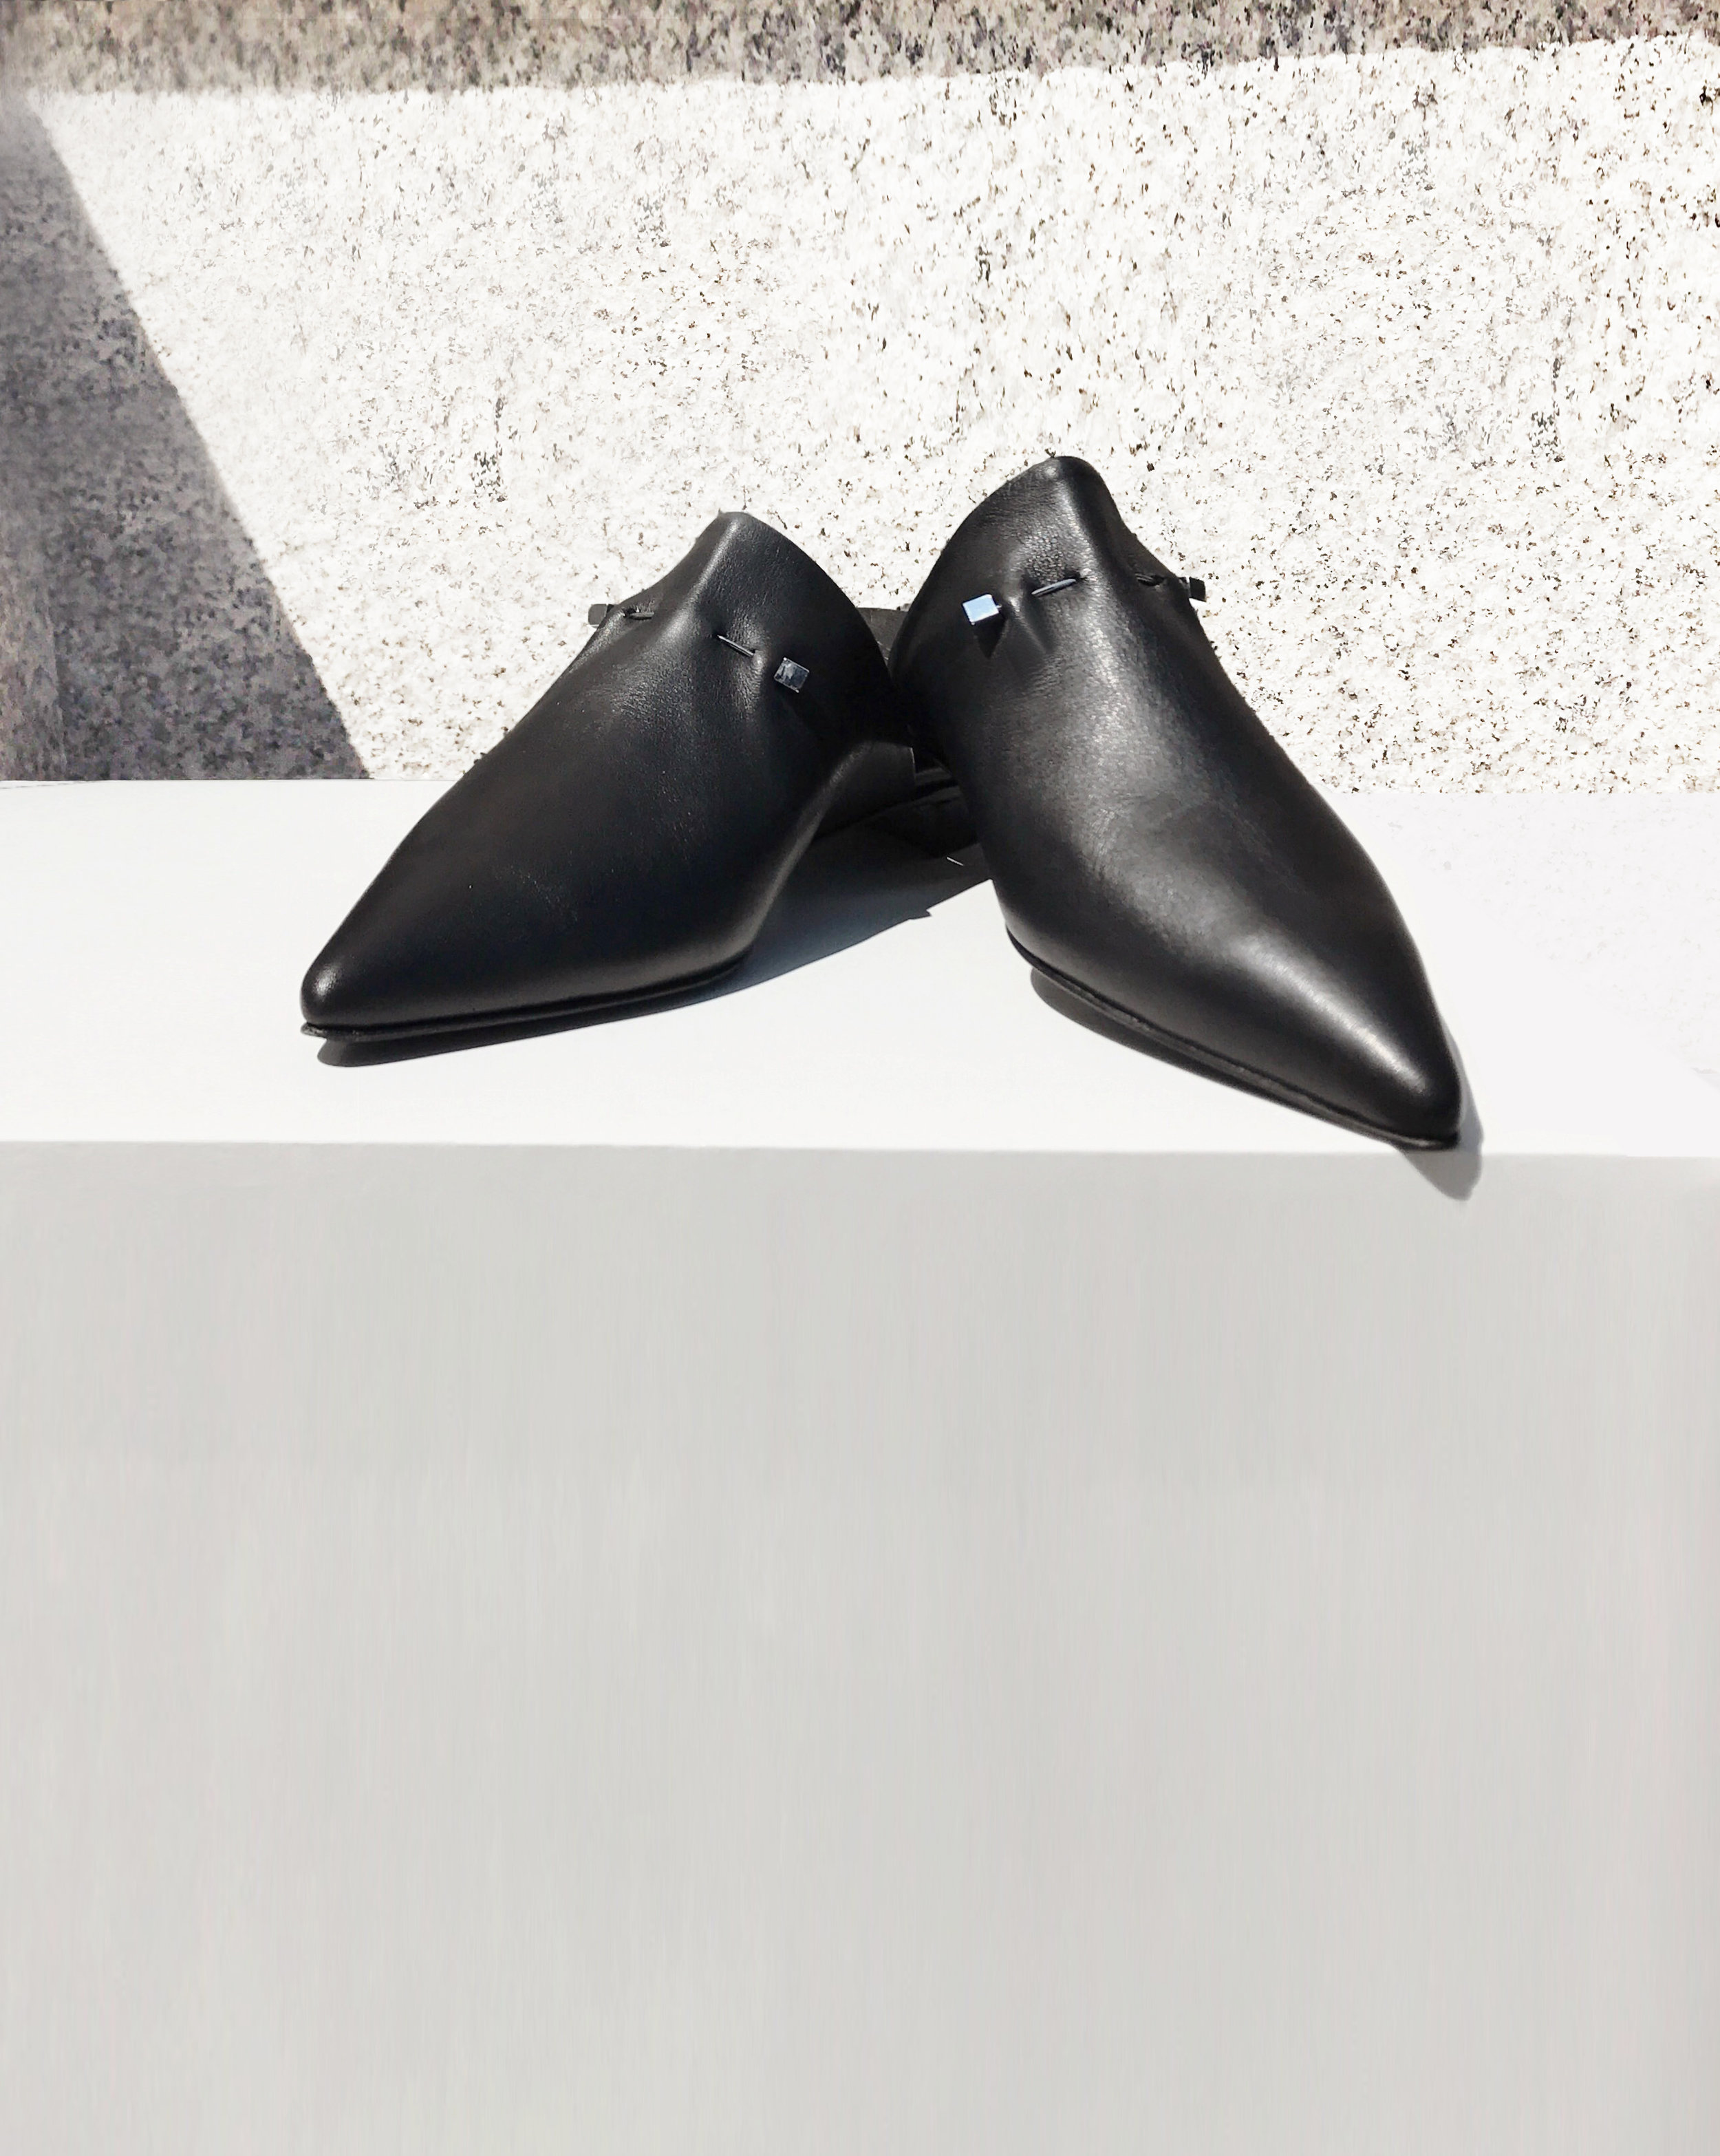 HANDCRAFTED SHOES - Black leather pointy-toe slipper with signature hardware for timeless chic